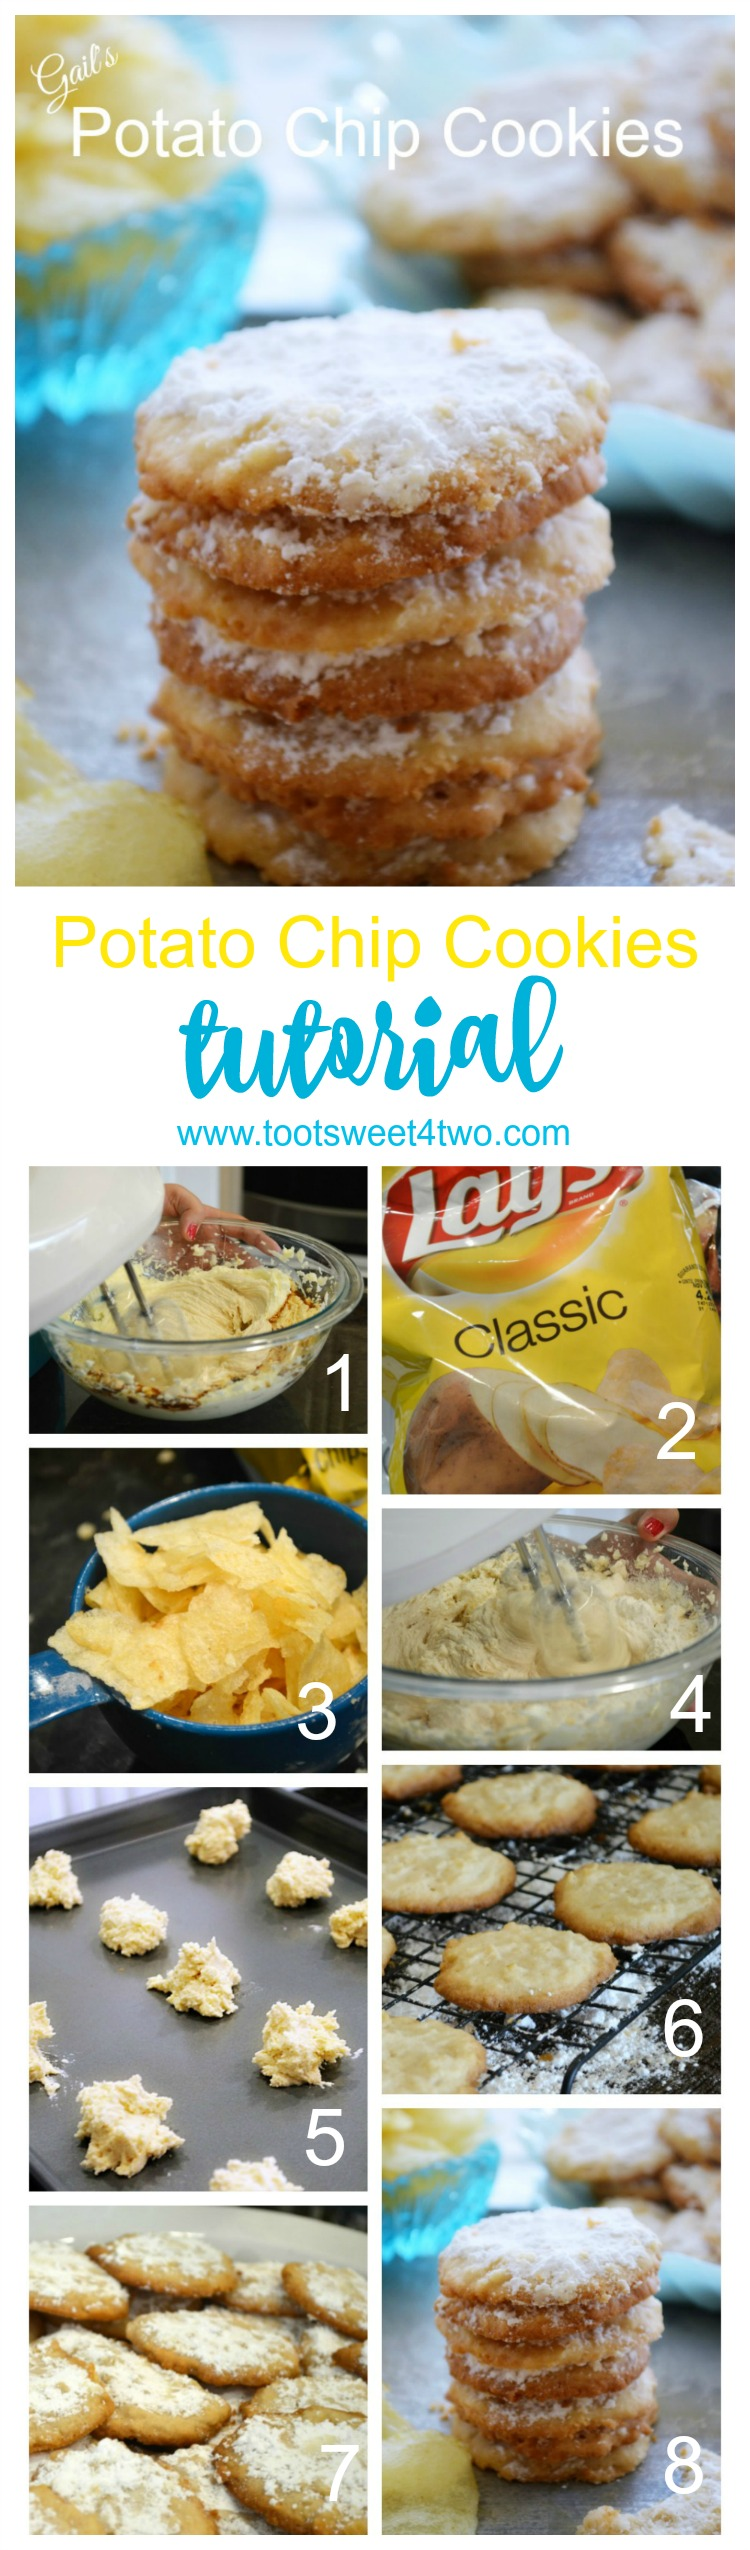 Gail's Potato Chip Cookies #potatochipcookies Gail's Classic Potato Chip Cookies - Toot Sweet 4 Two #potatochipcookies